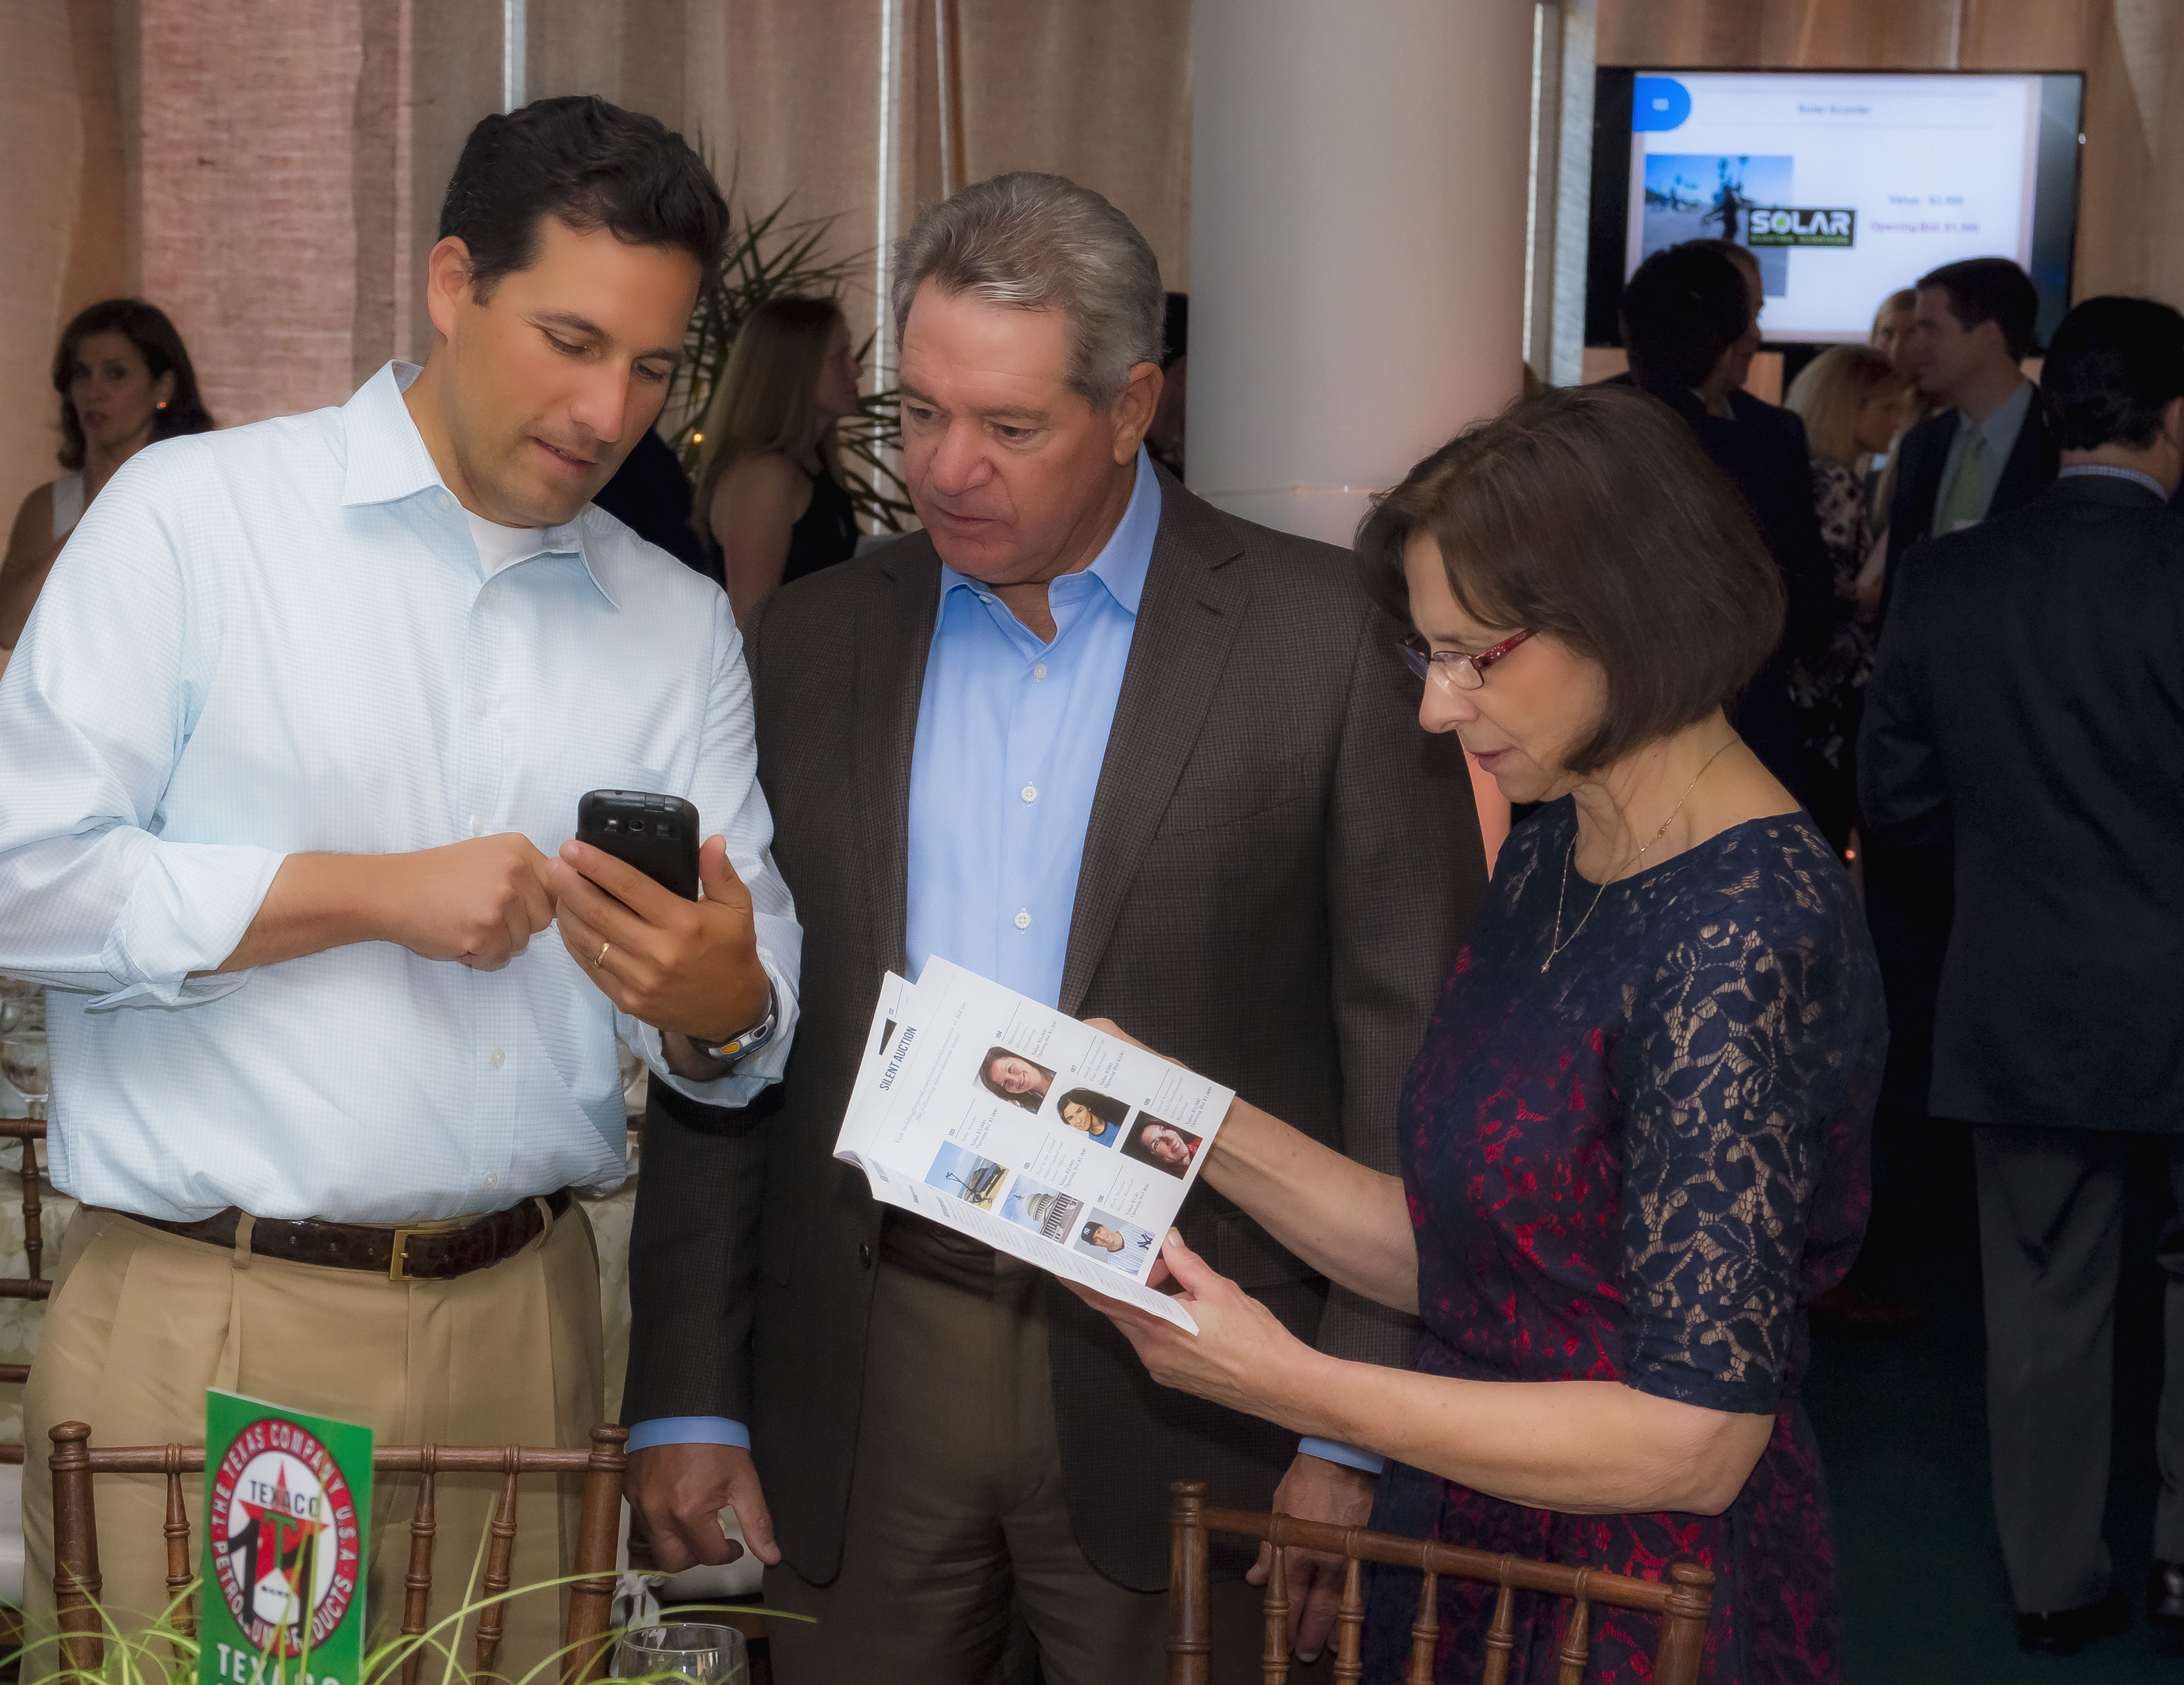 Gala attendees bidding on their phones